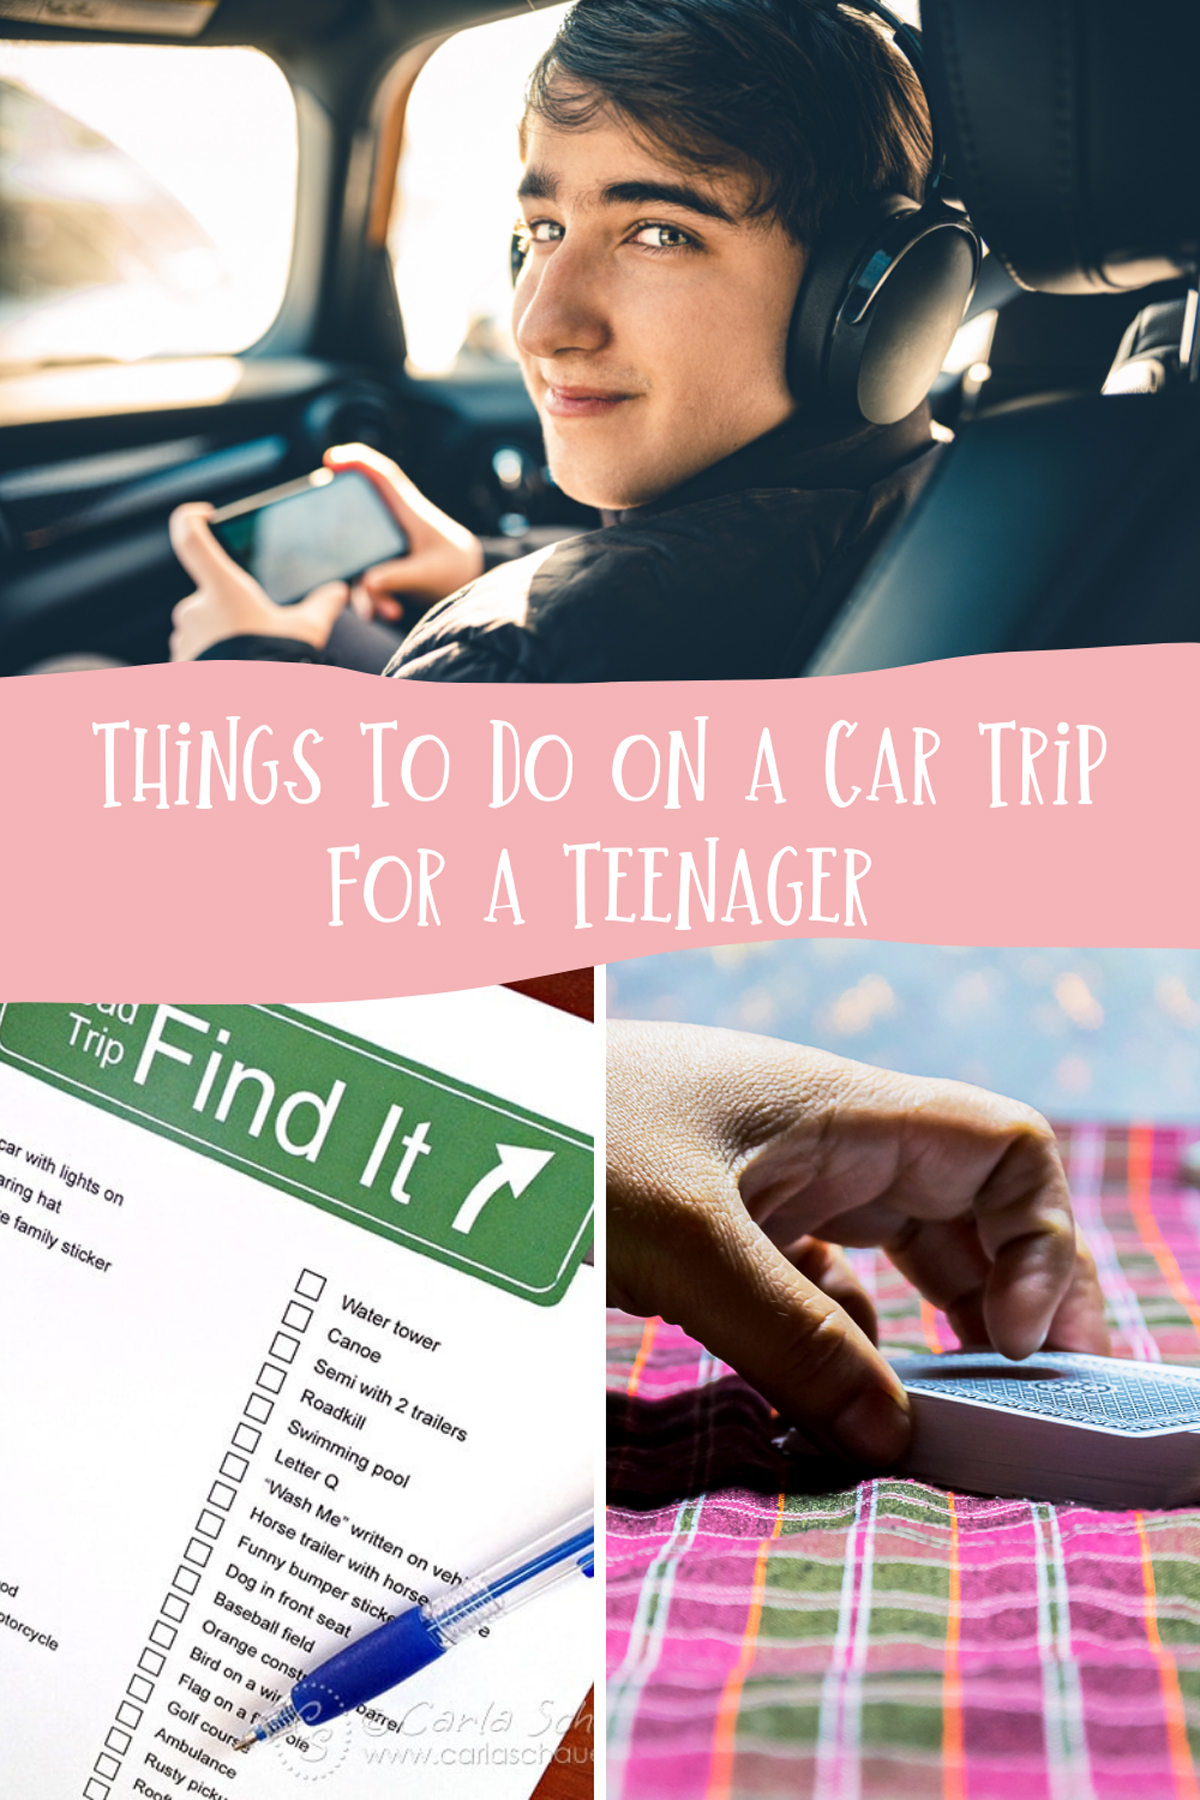 Things to do on a car trip for teens